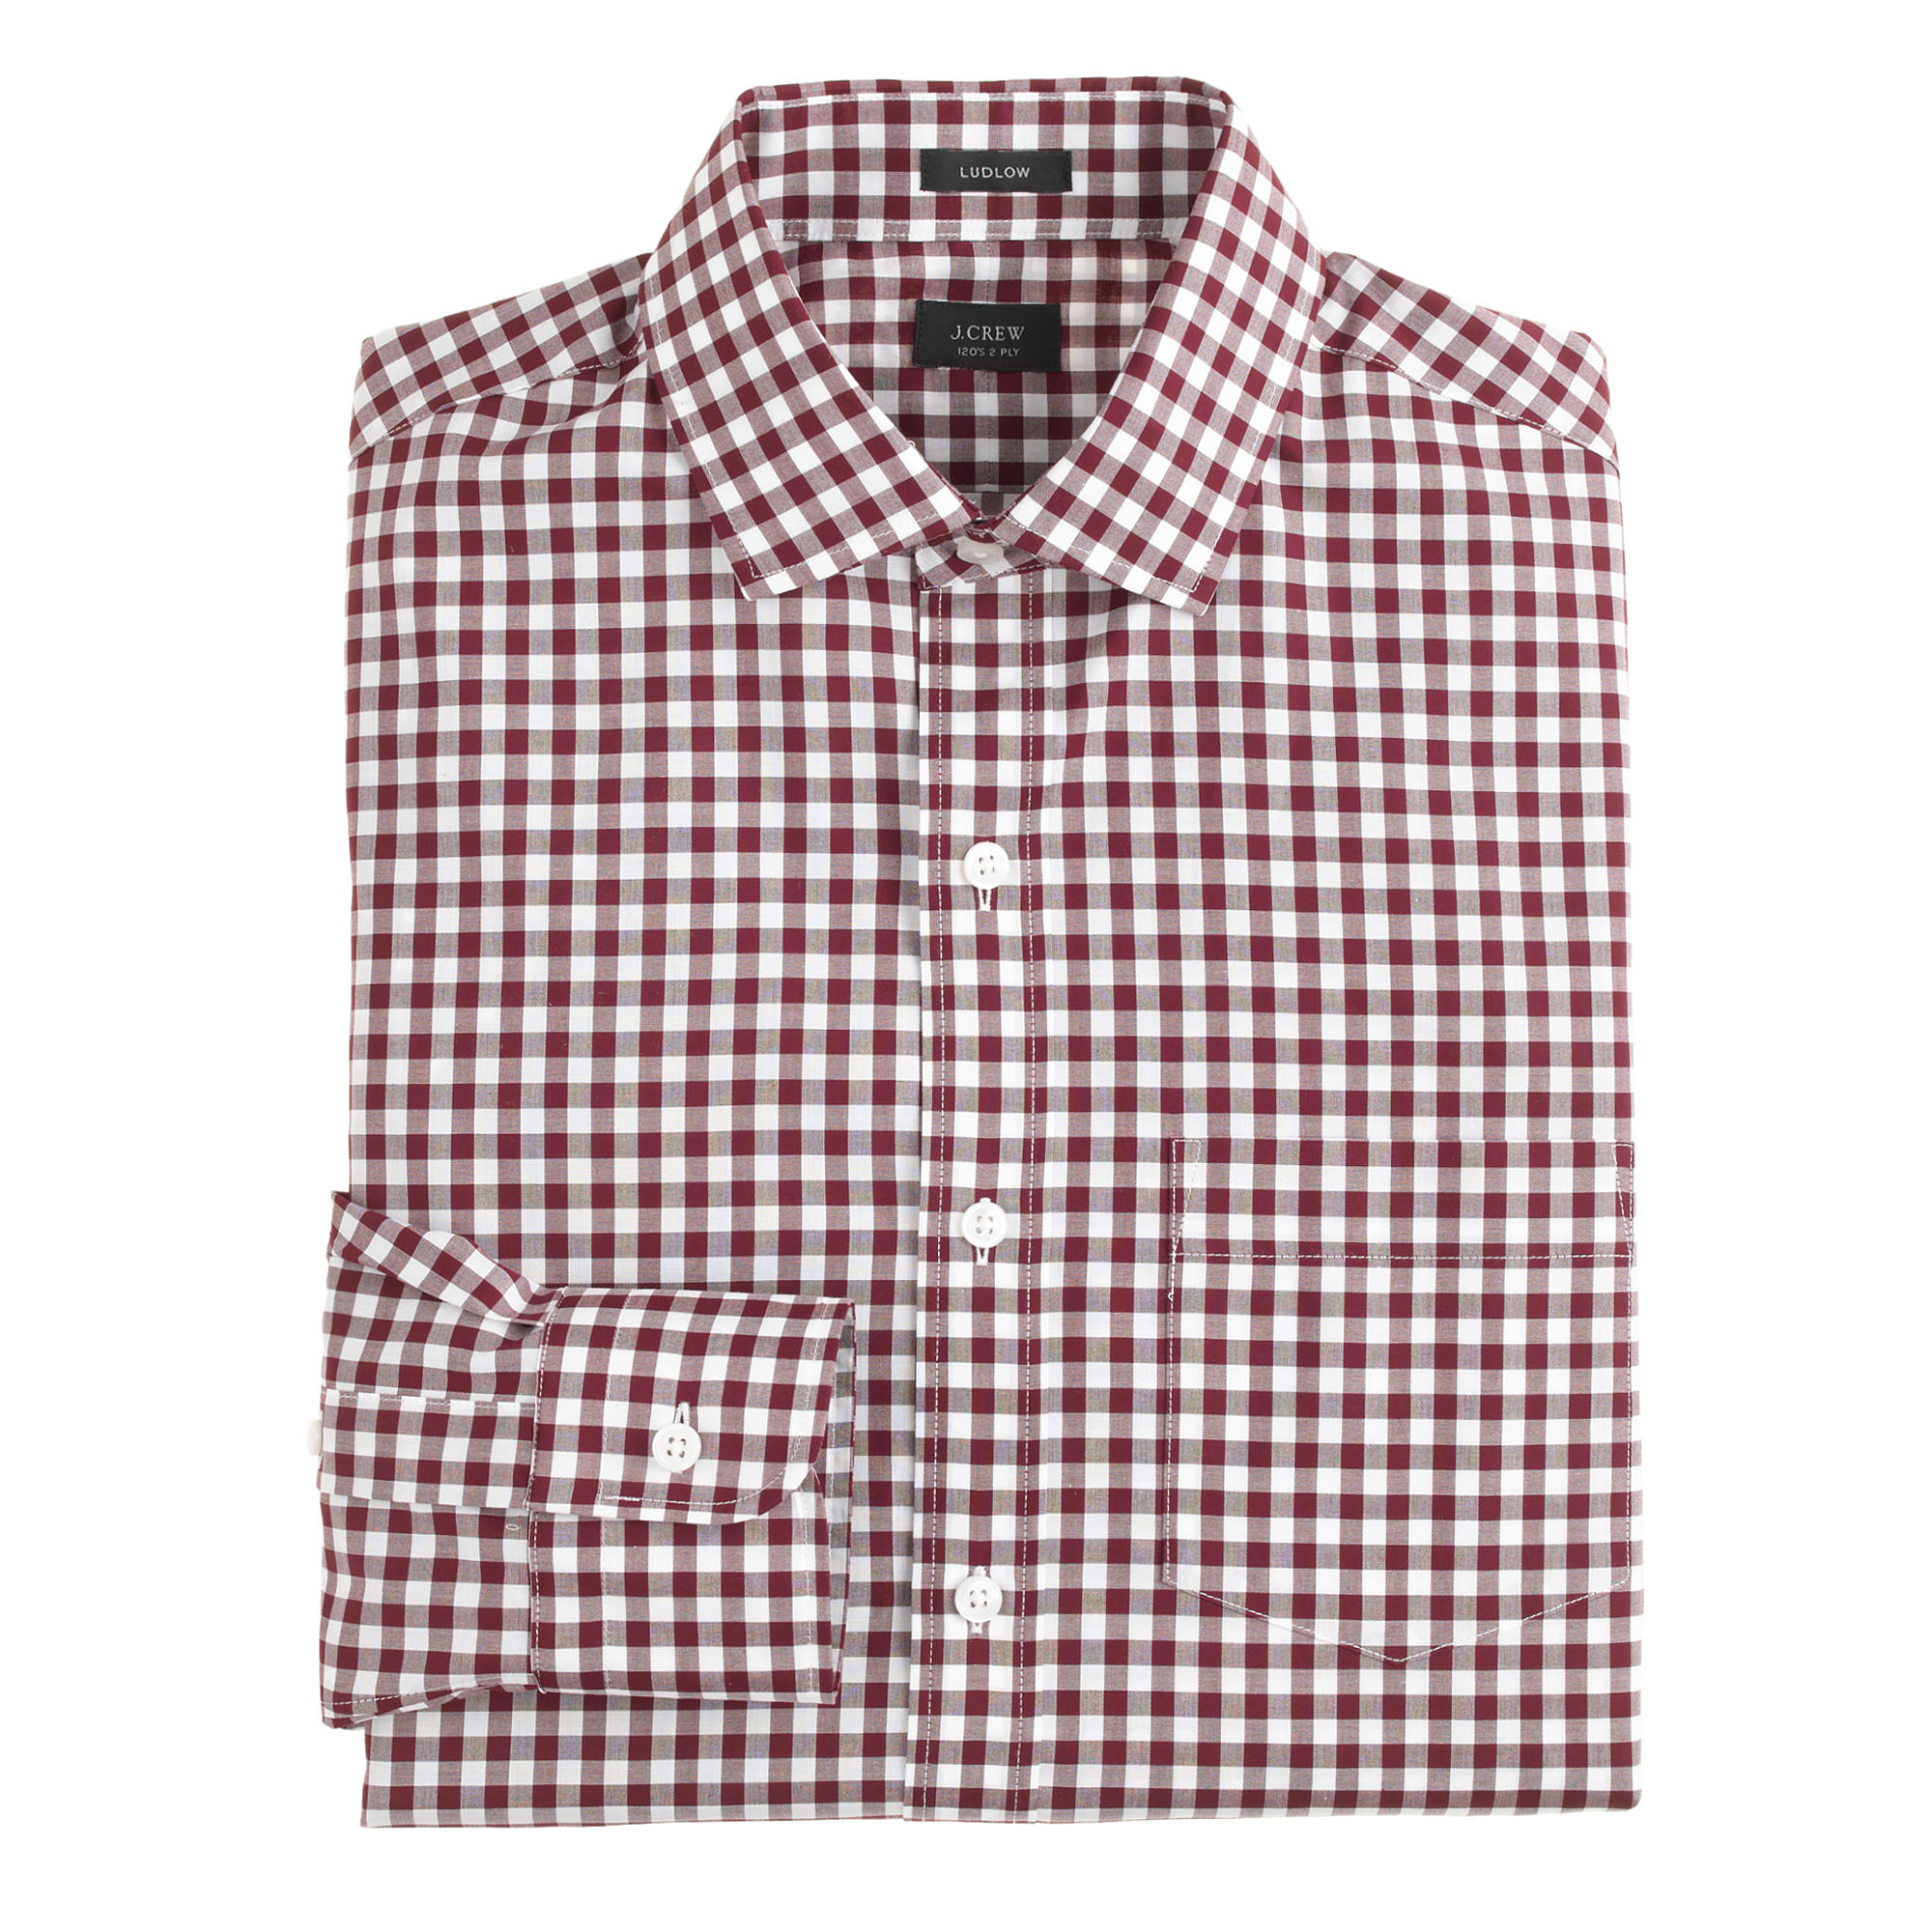 J.Crew Ludlow Spread-Collar Shirt in Burgundy Gingham | 10 Fall Wardrobe Essentials for Men | Style and Cheek's Favorite Blog Posts of 2014